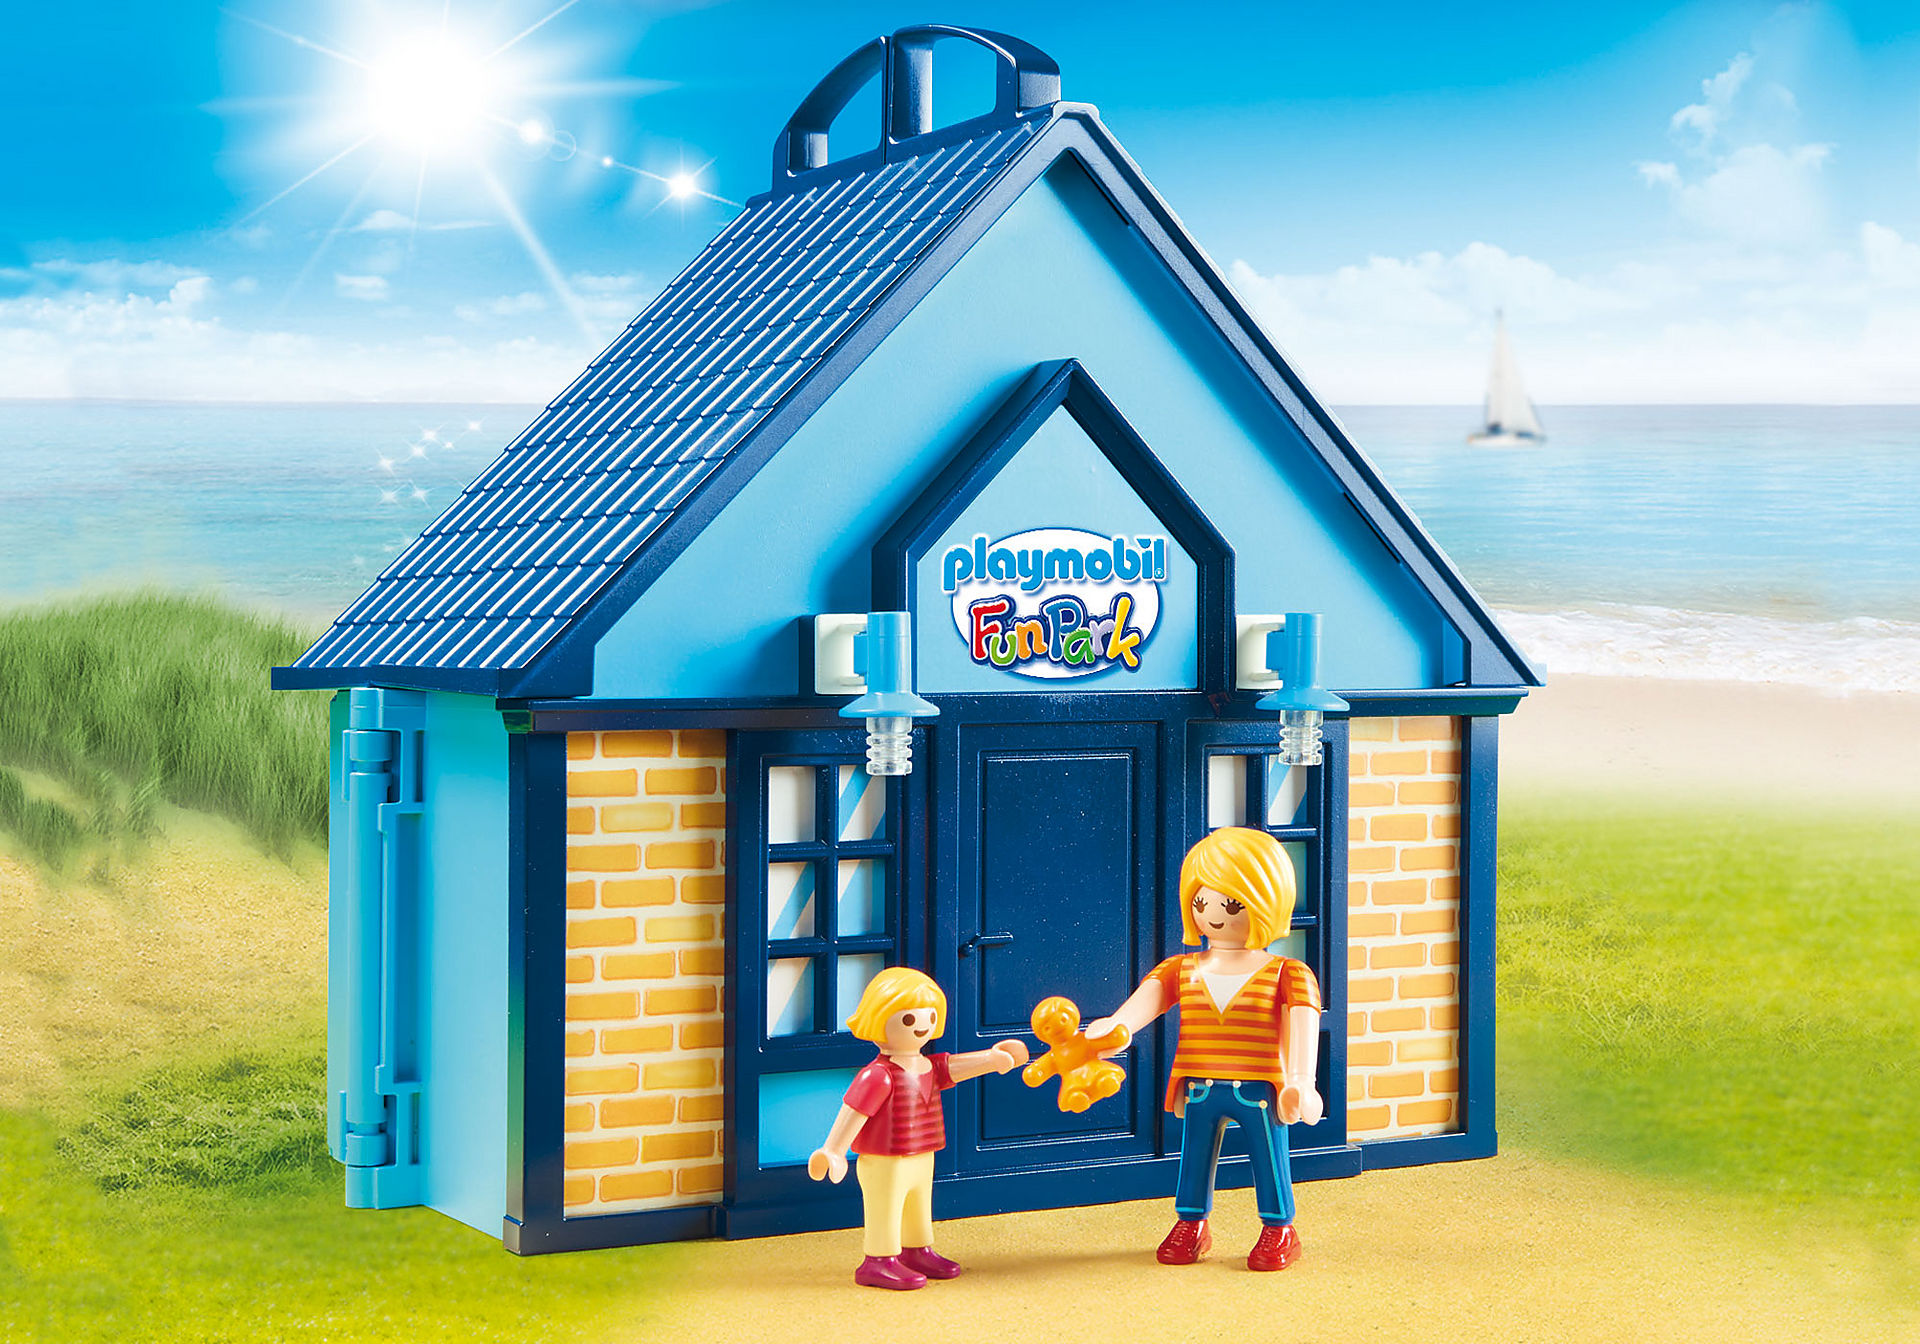 70219 PLAYMOBIL FunPark - Playbox casa delle vacanze zoom image4